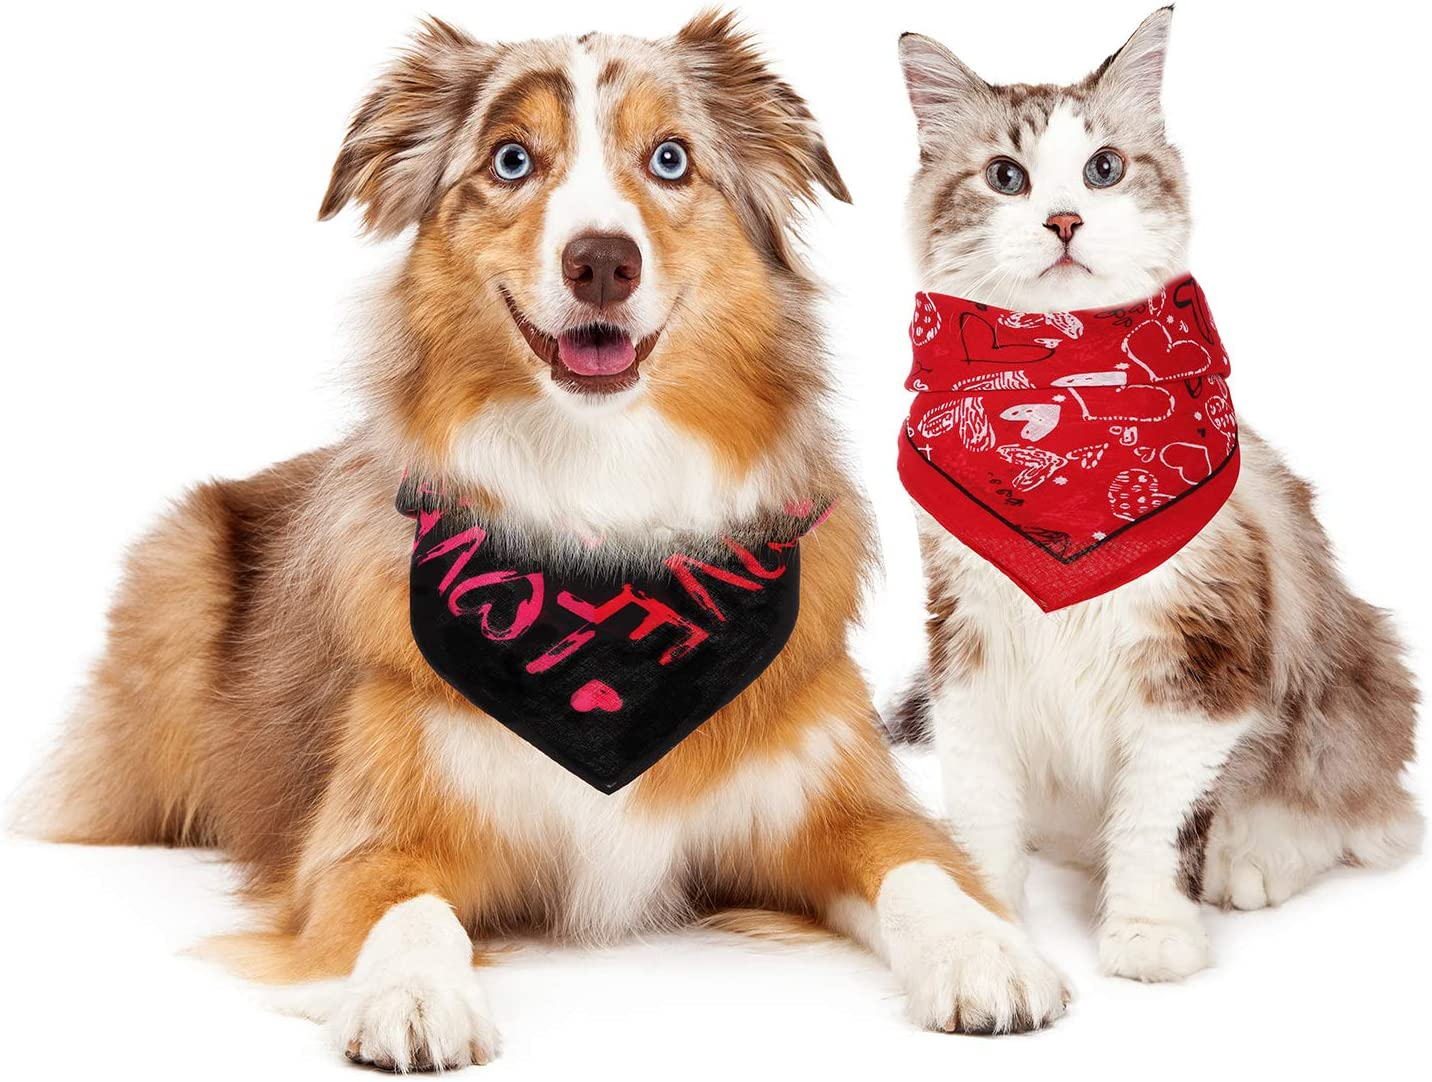 SATINIOR 4 Pieces Valentine/'s Day Pet Dog Bandanas Heart Washable Triangle Square Cute Pet Scarf Novelty Cotton Bibs for Dogs Cats Puppies